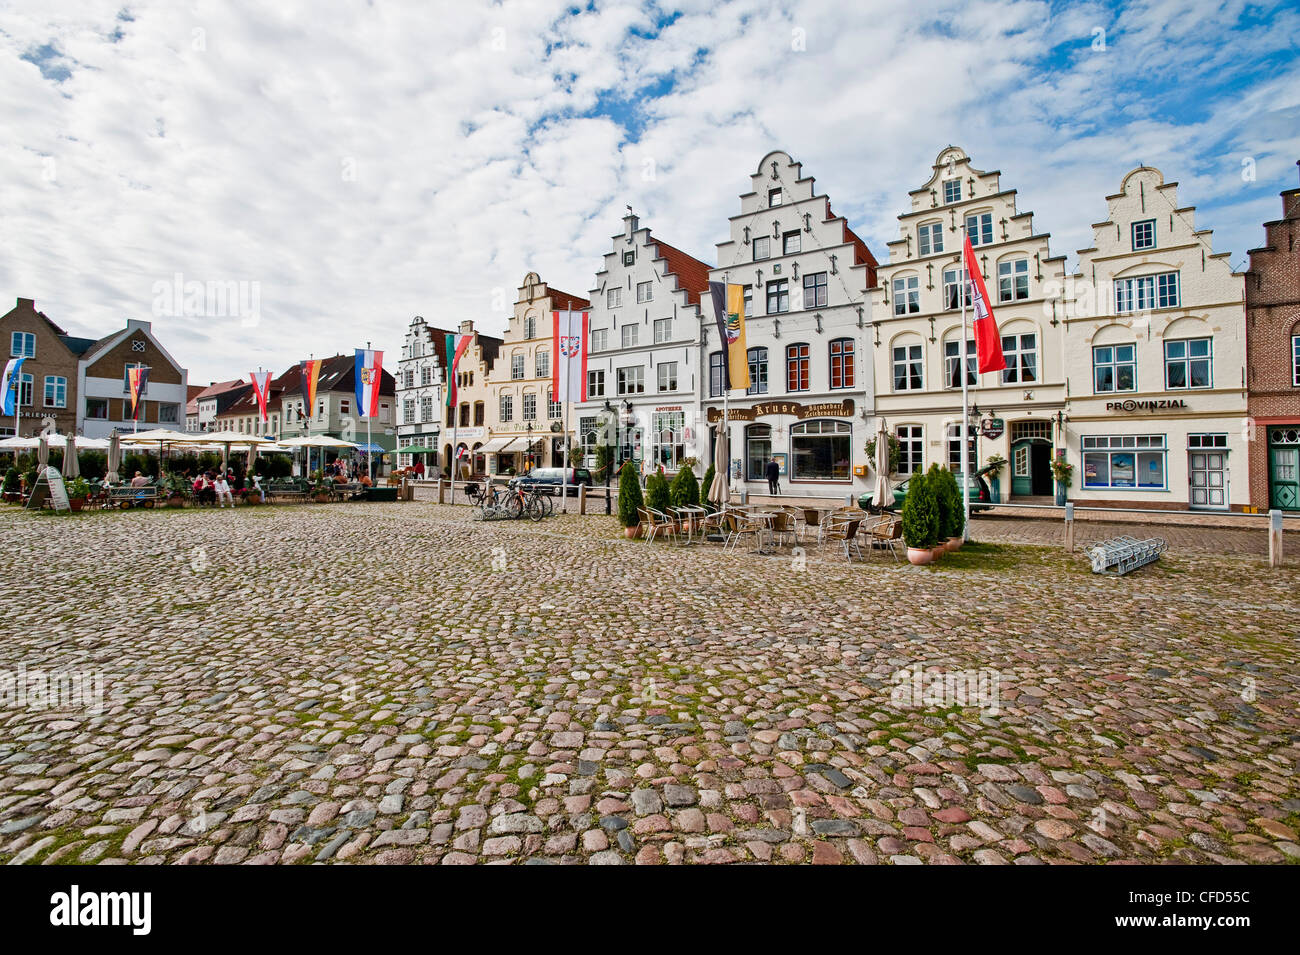 Historical houses at Friedrichstadt, Schleswig Holstein, Germany, Europe - Stock Image